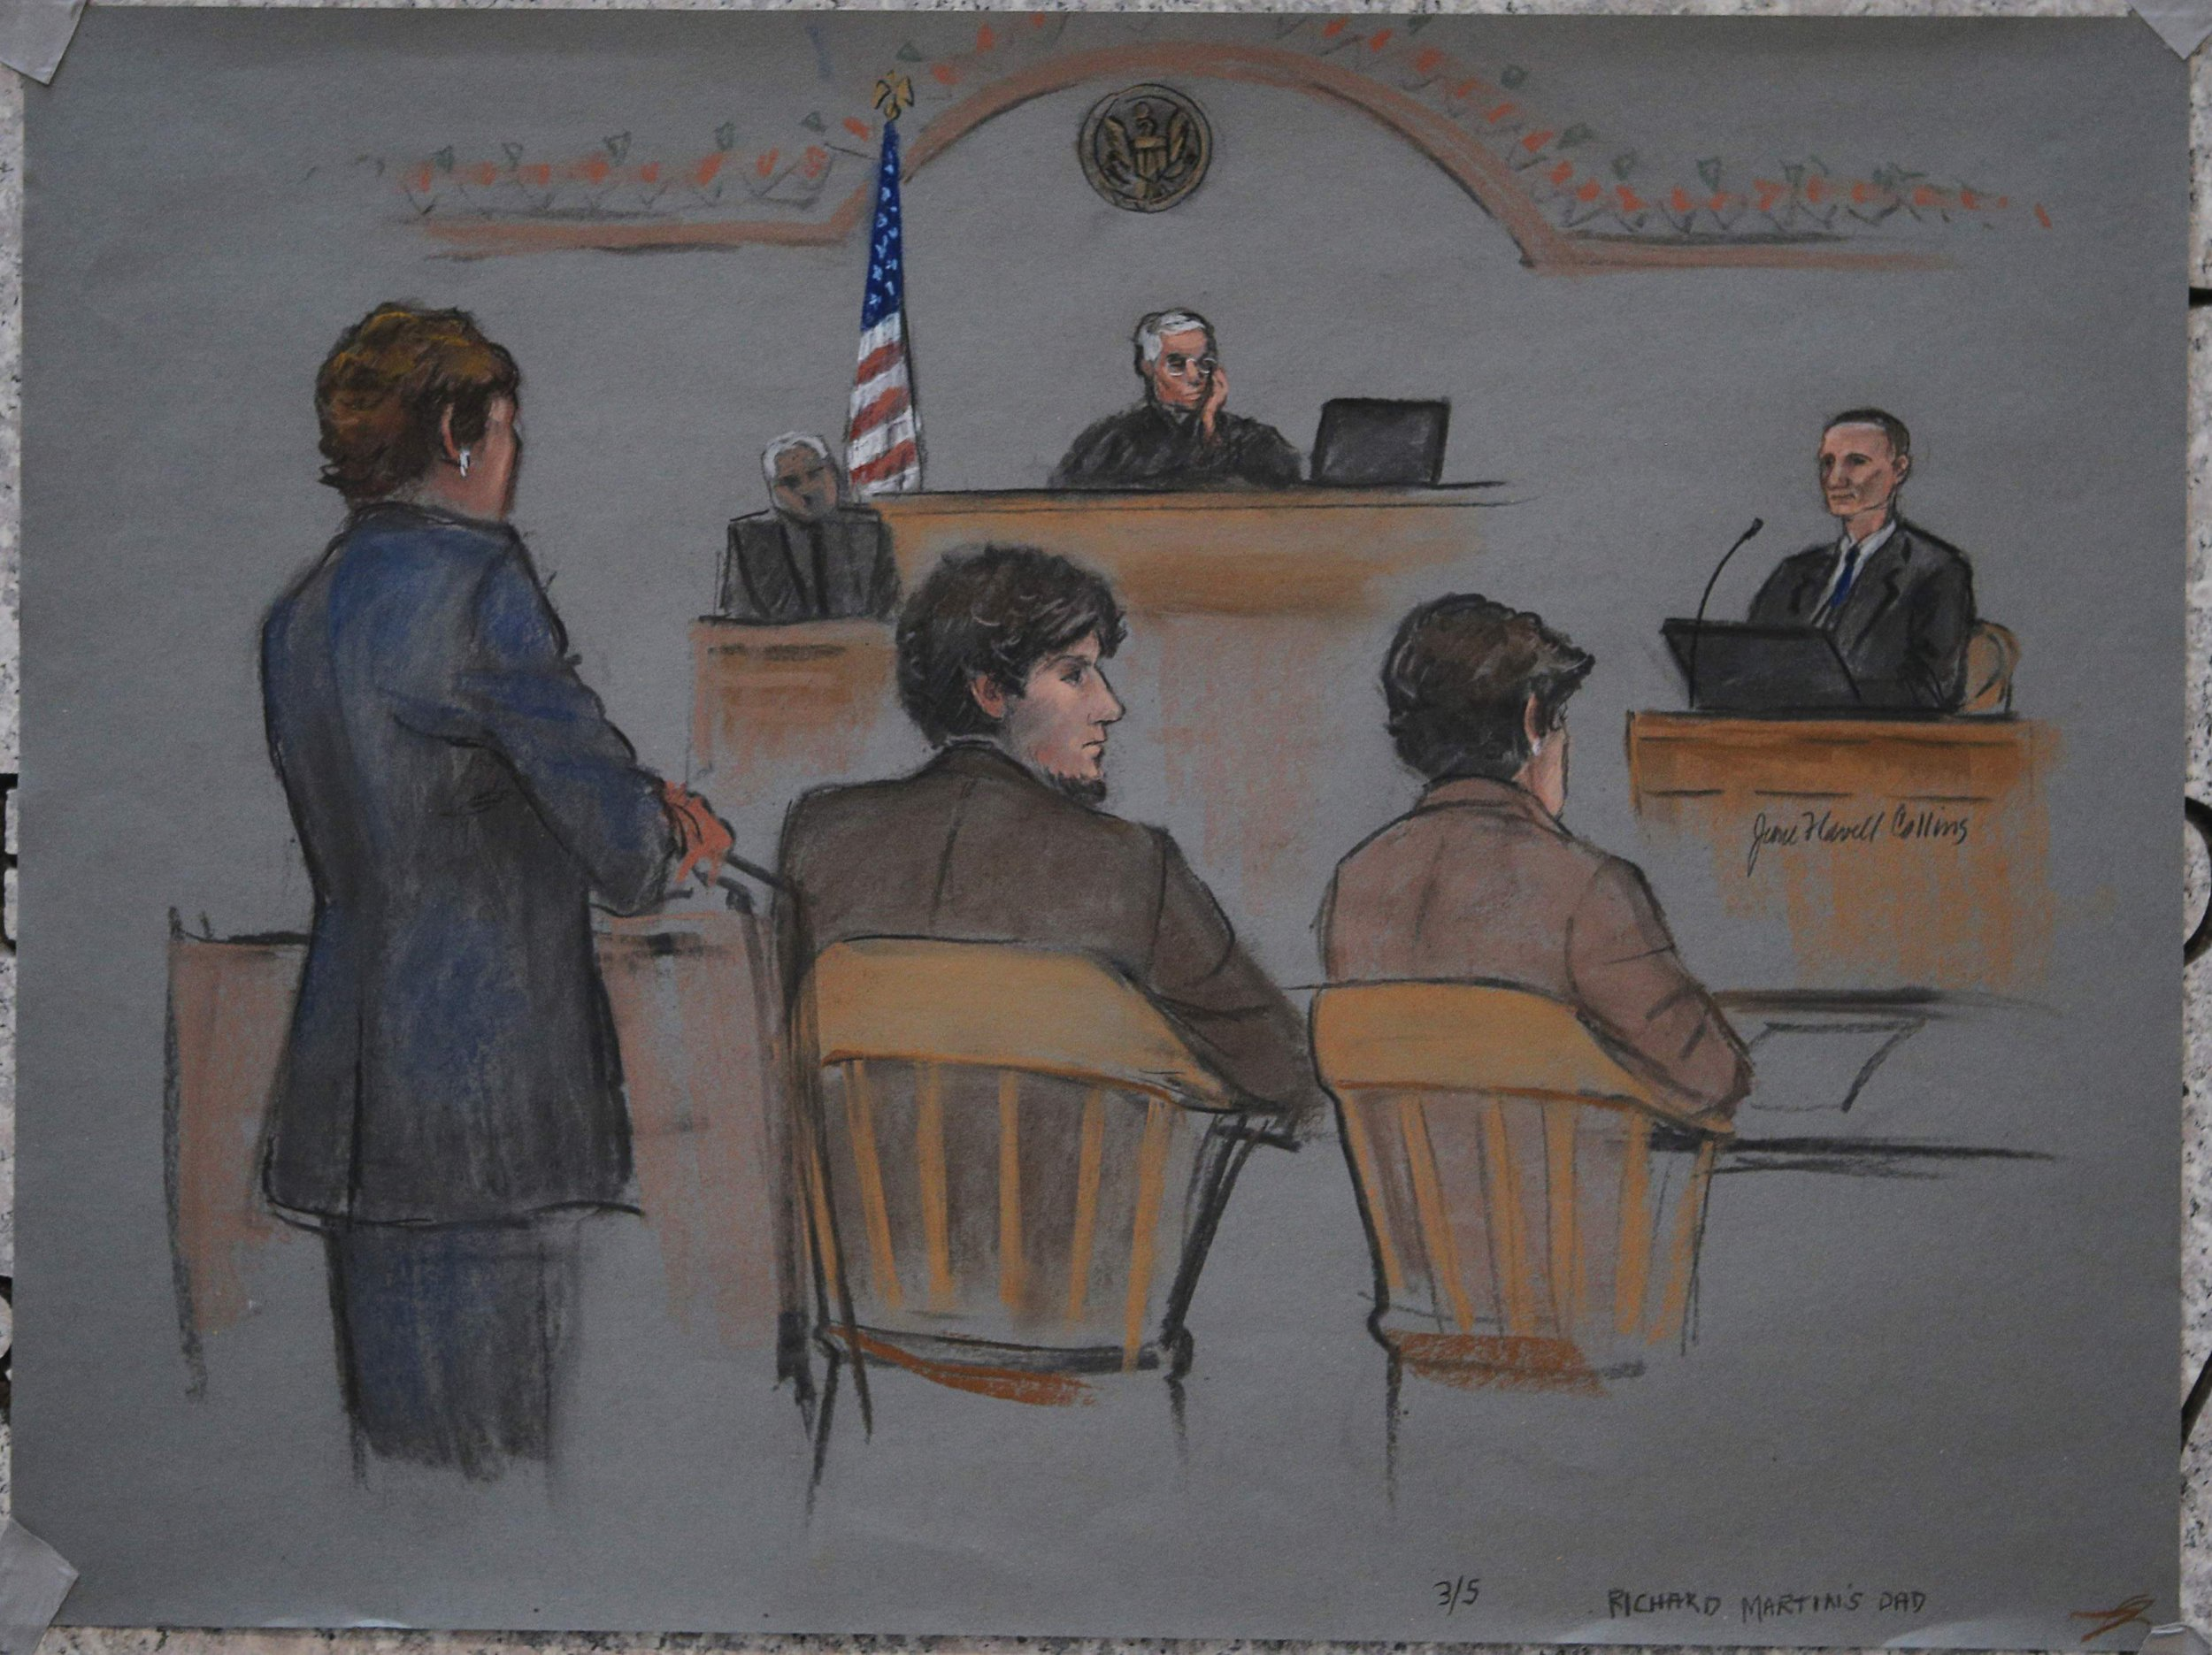 2015-03-12T110848Z_1_LYNXMPEB2B0H5_RTROPTP_4_BOSTON-BOMBING-TRIAL